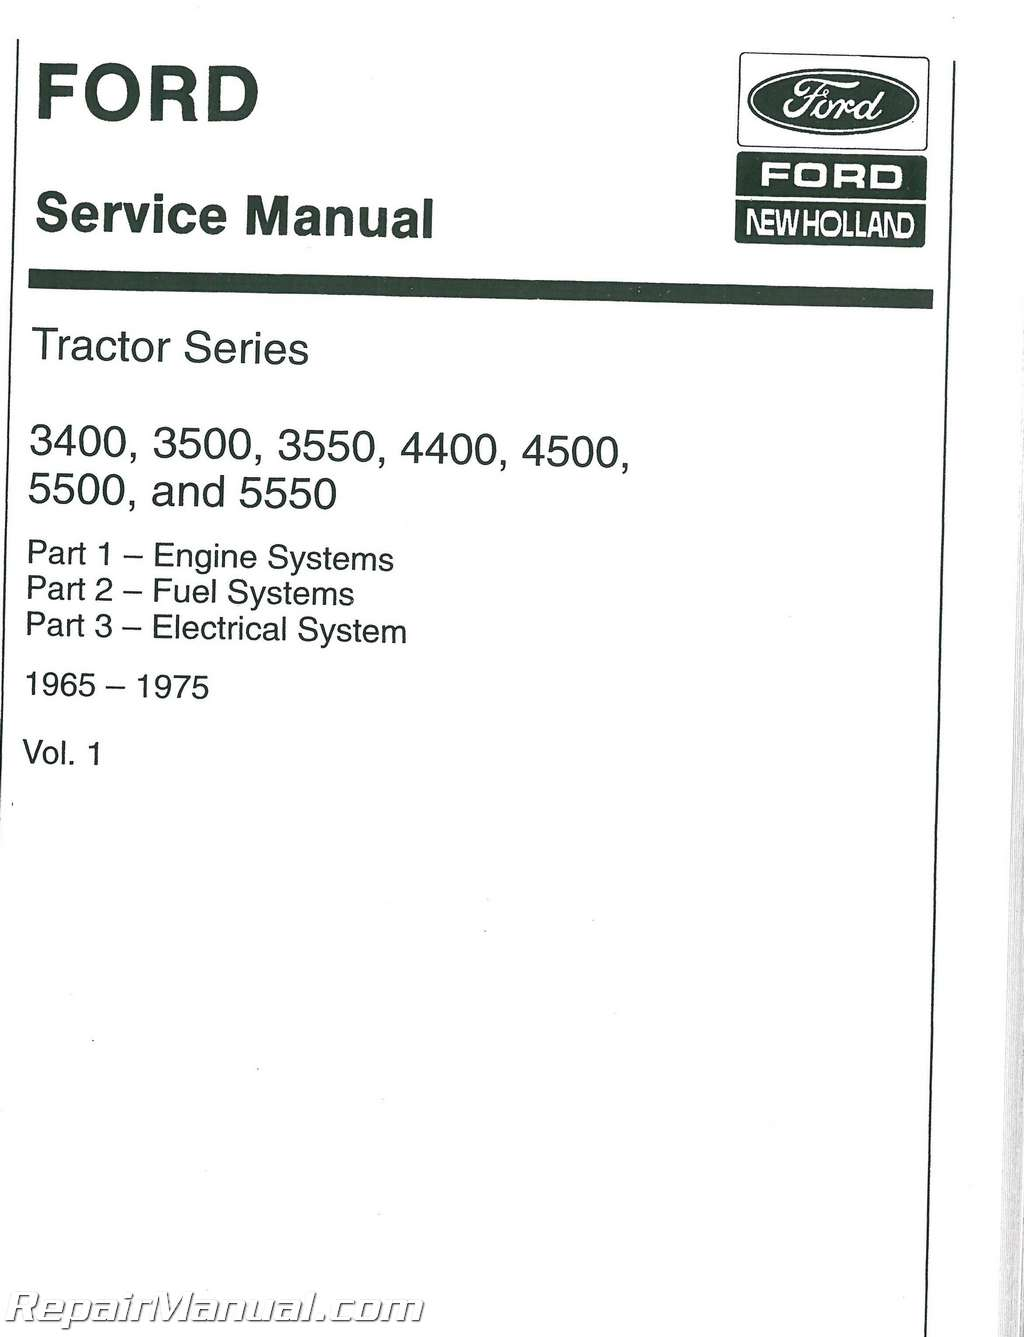 ford 3400 3500 3550 4500 ind 3 cyl tractor only 65 75 service manual rh repairmanual com ford 4600 tractor manual ford 4500 industrial tractor service manual